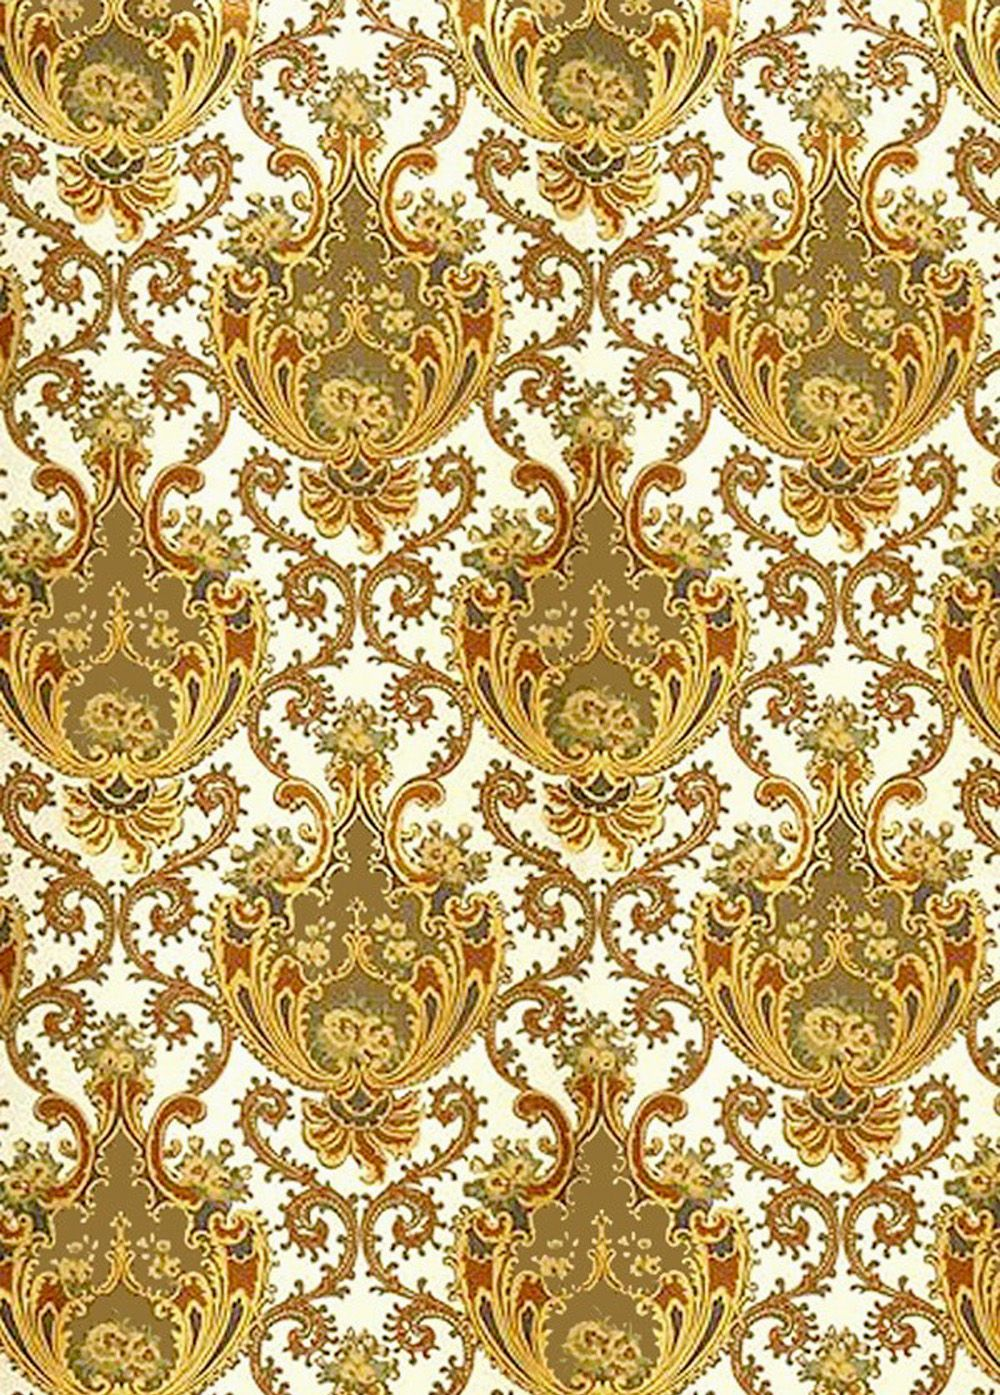 wallpaper victorian windows7 gold - photo #14